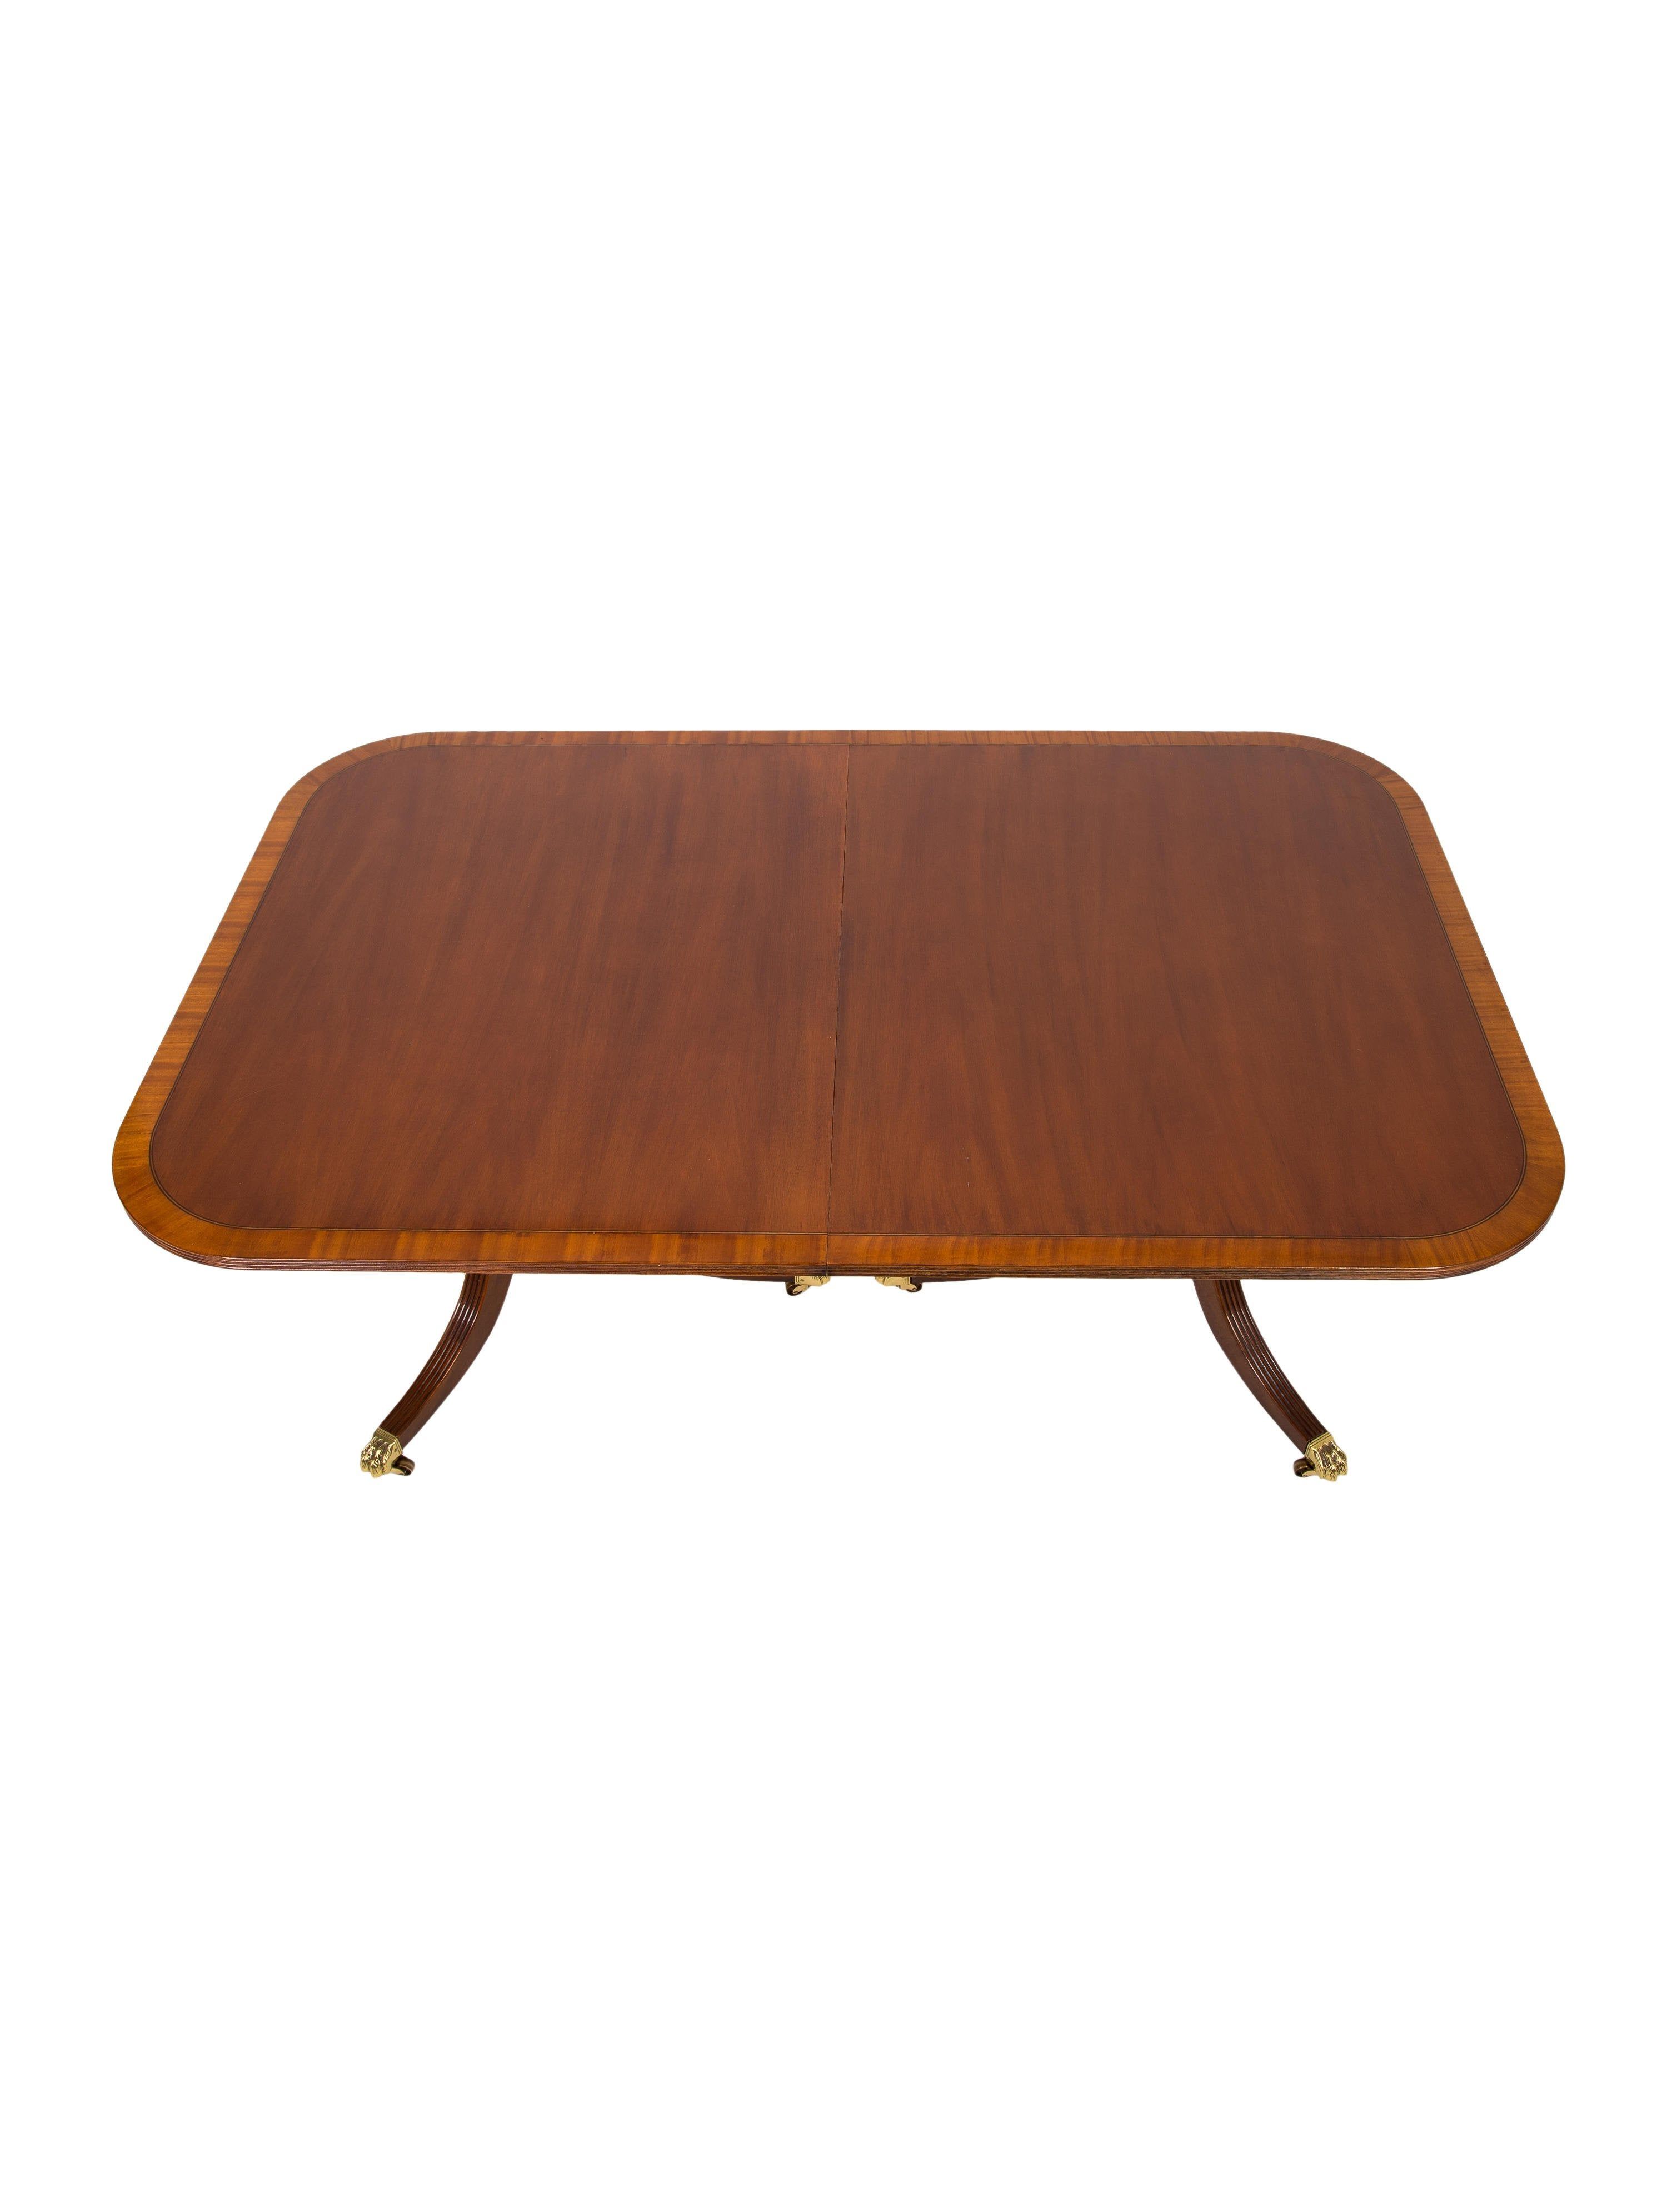 Mahogany Dining Table Furniture Table20380 The Realreal